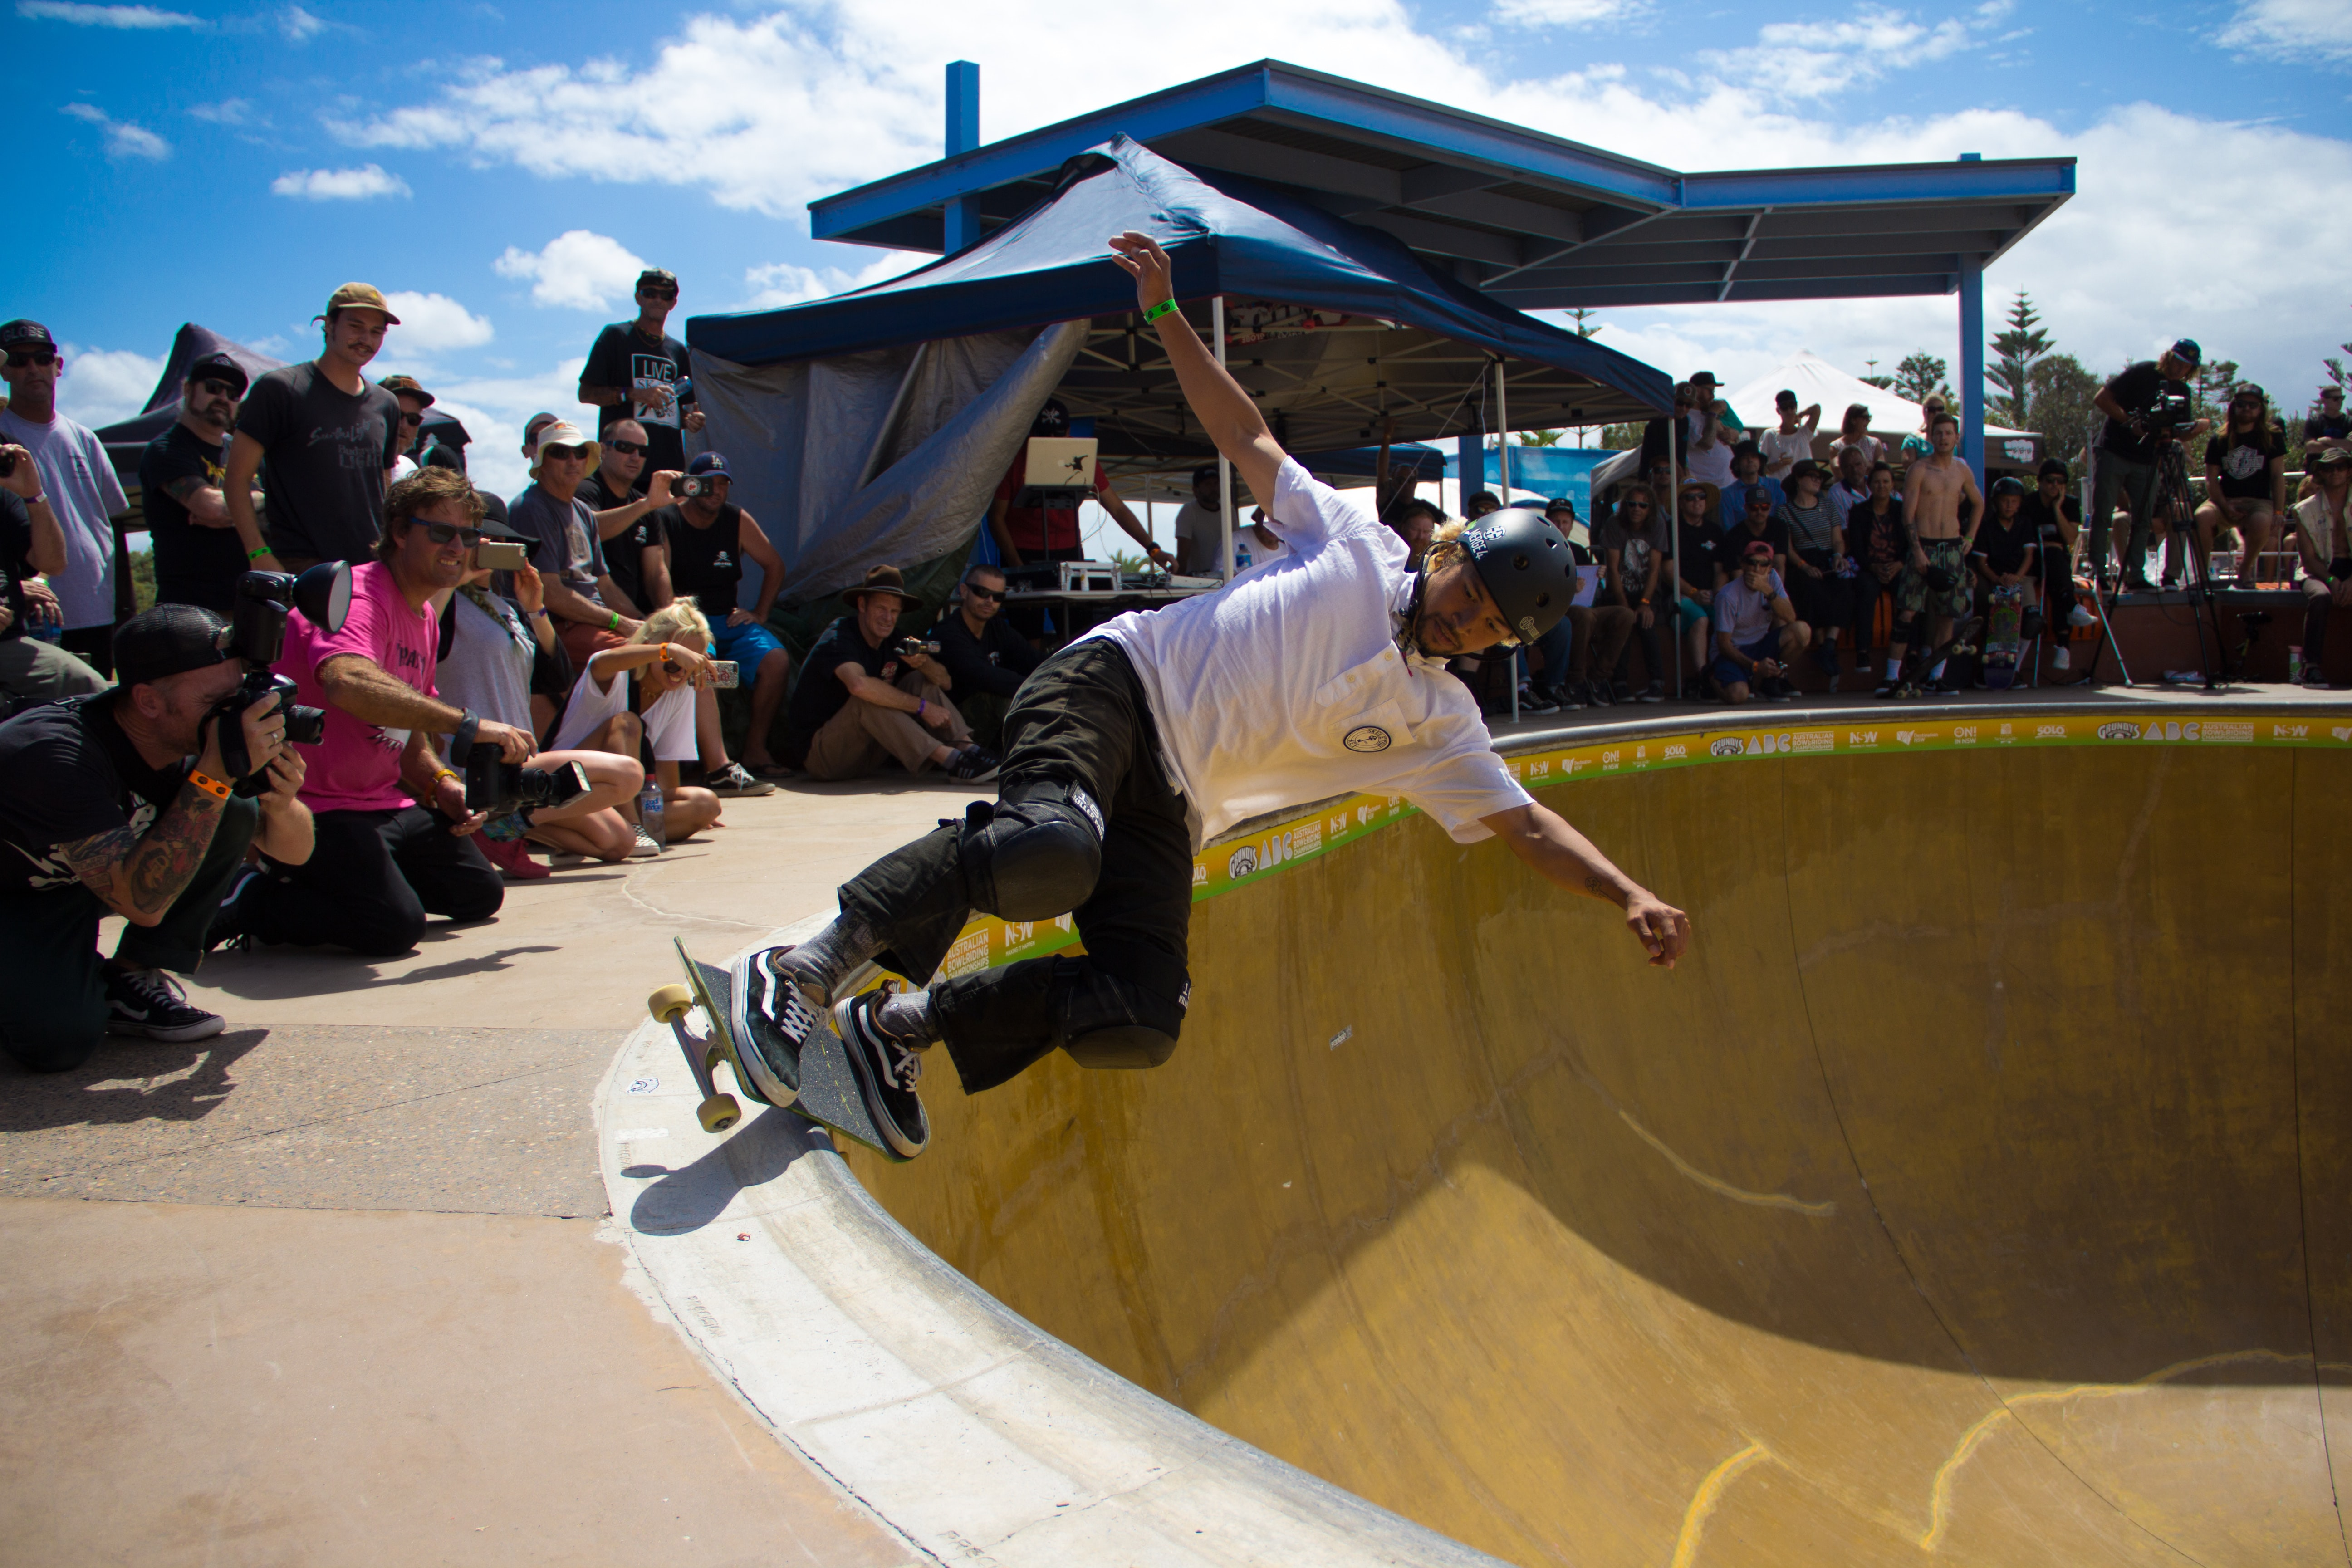 A diverse crowd cheers on a skateboarder in a skate park competition